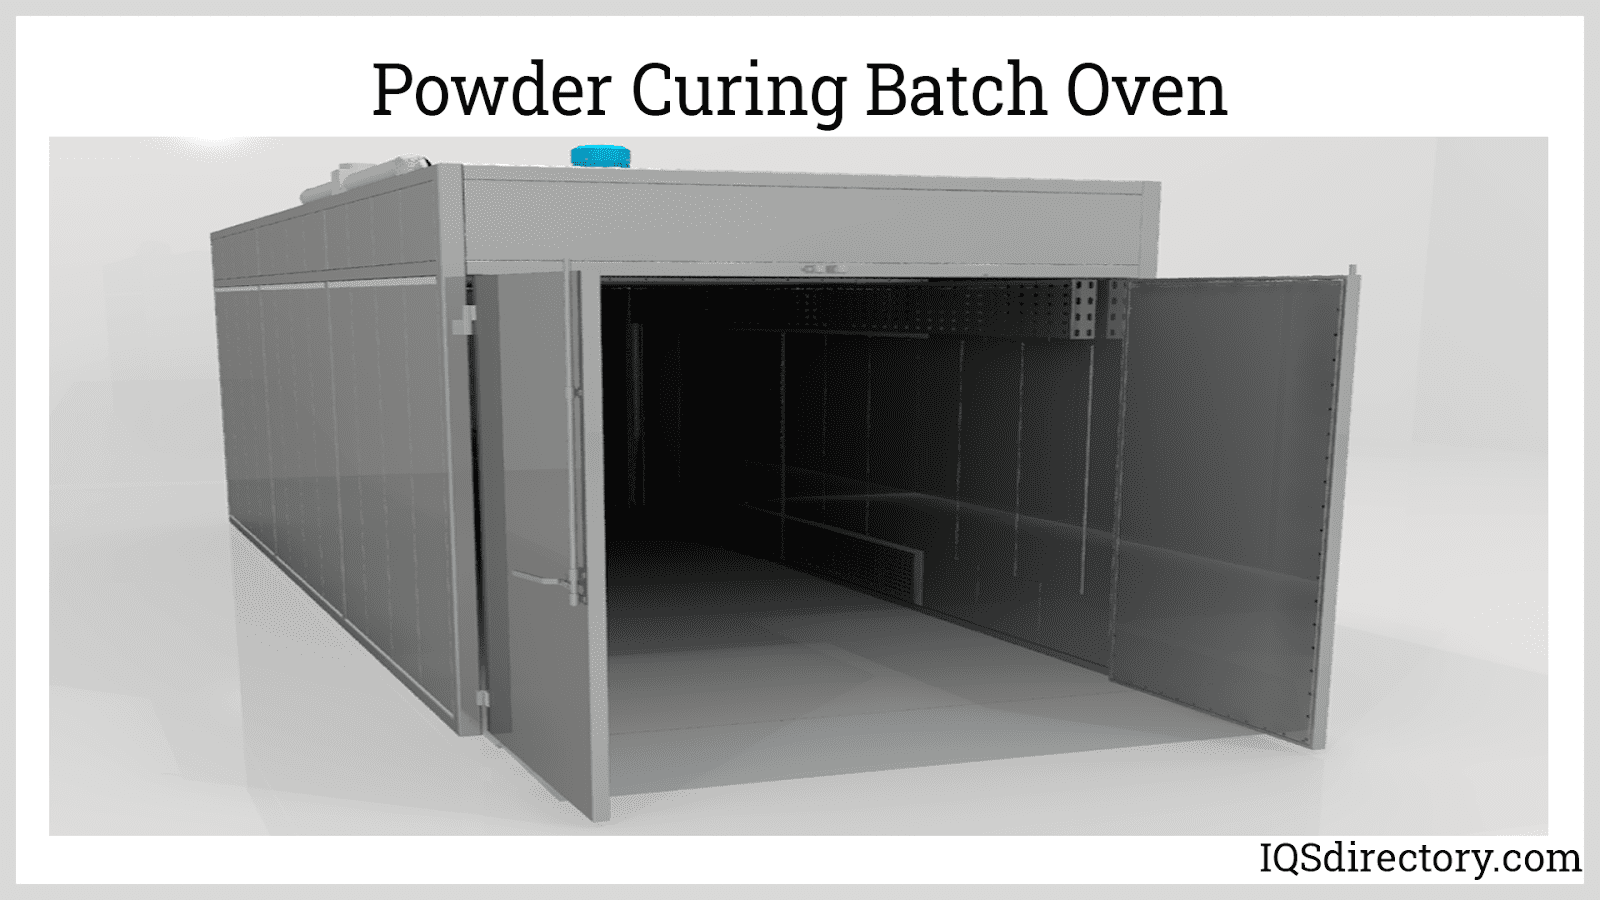 Powder Curing Batch Oven